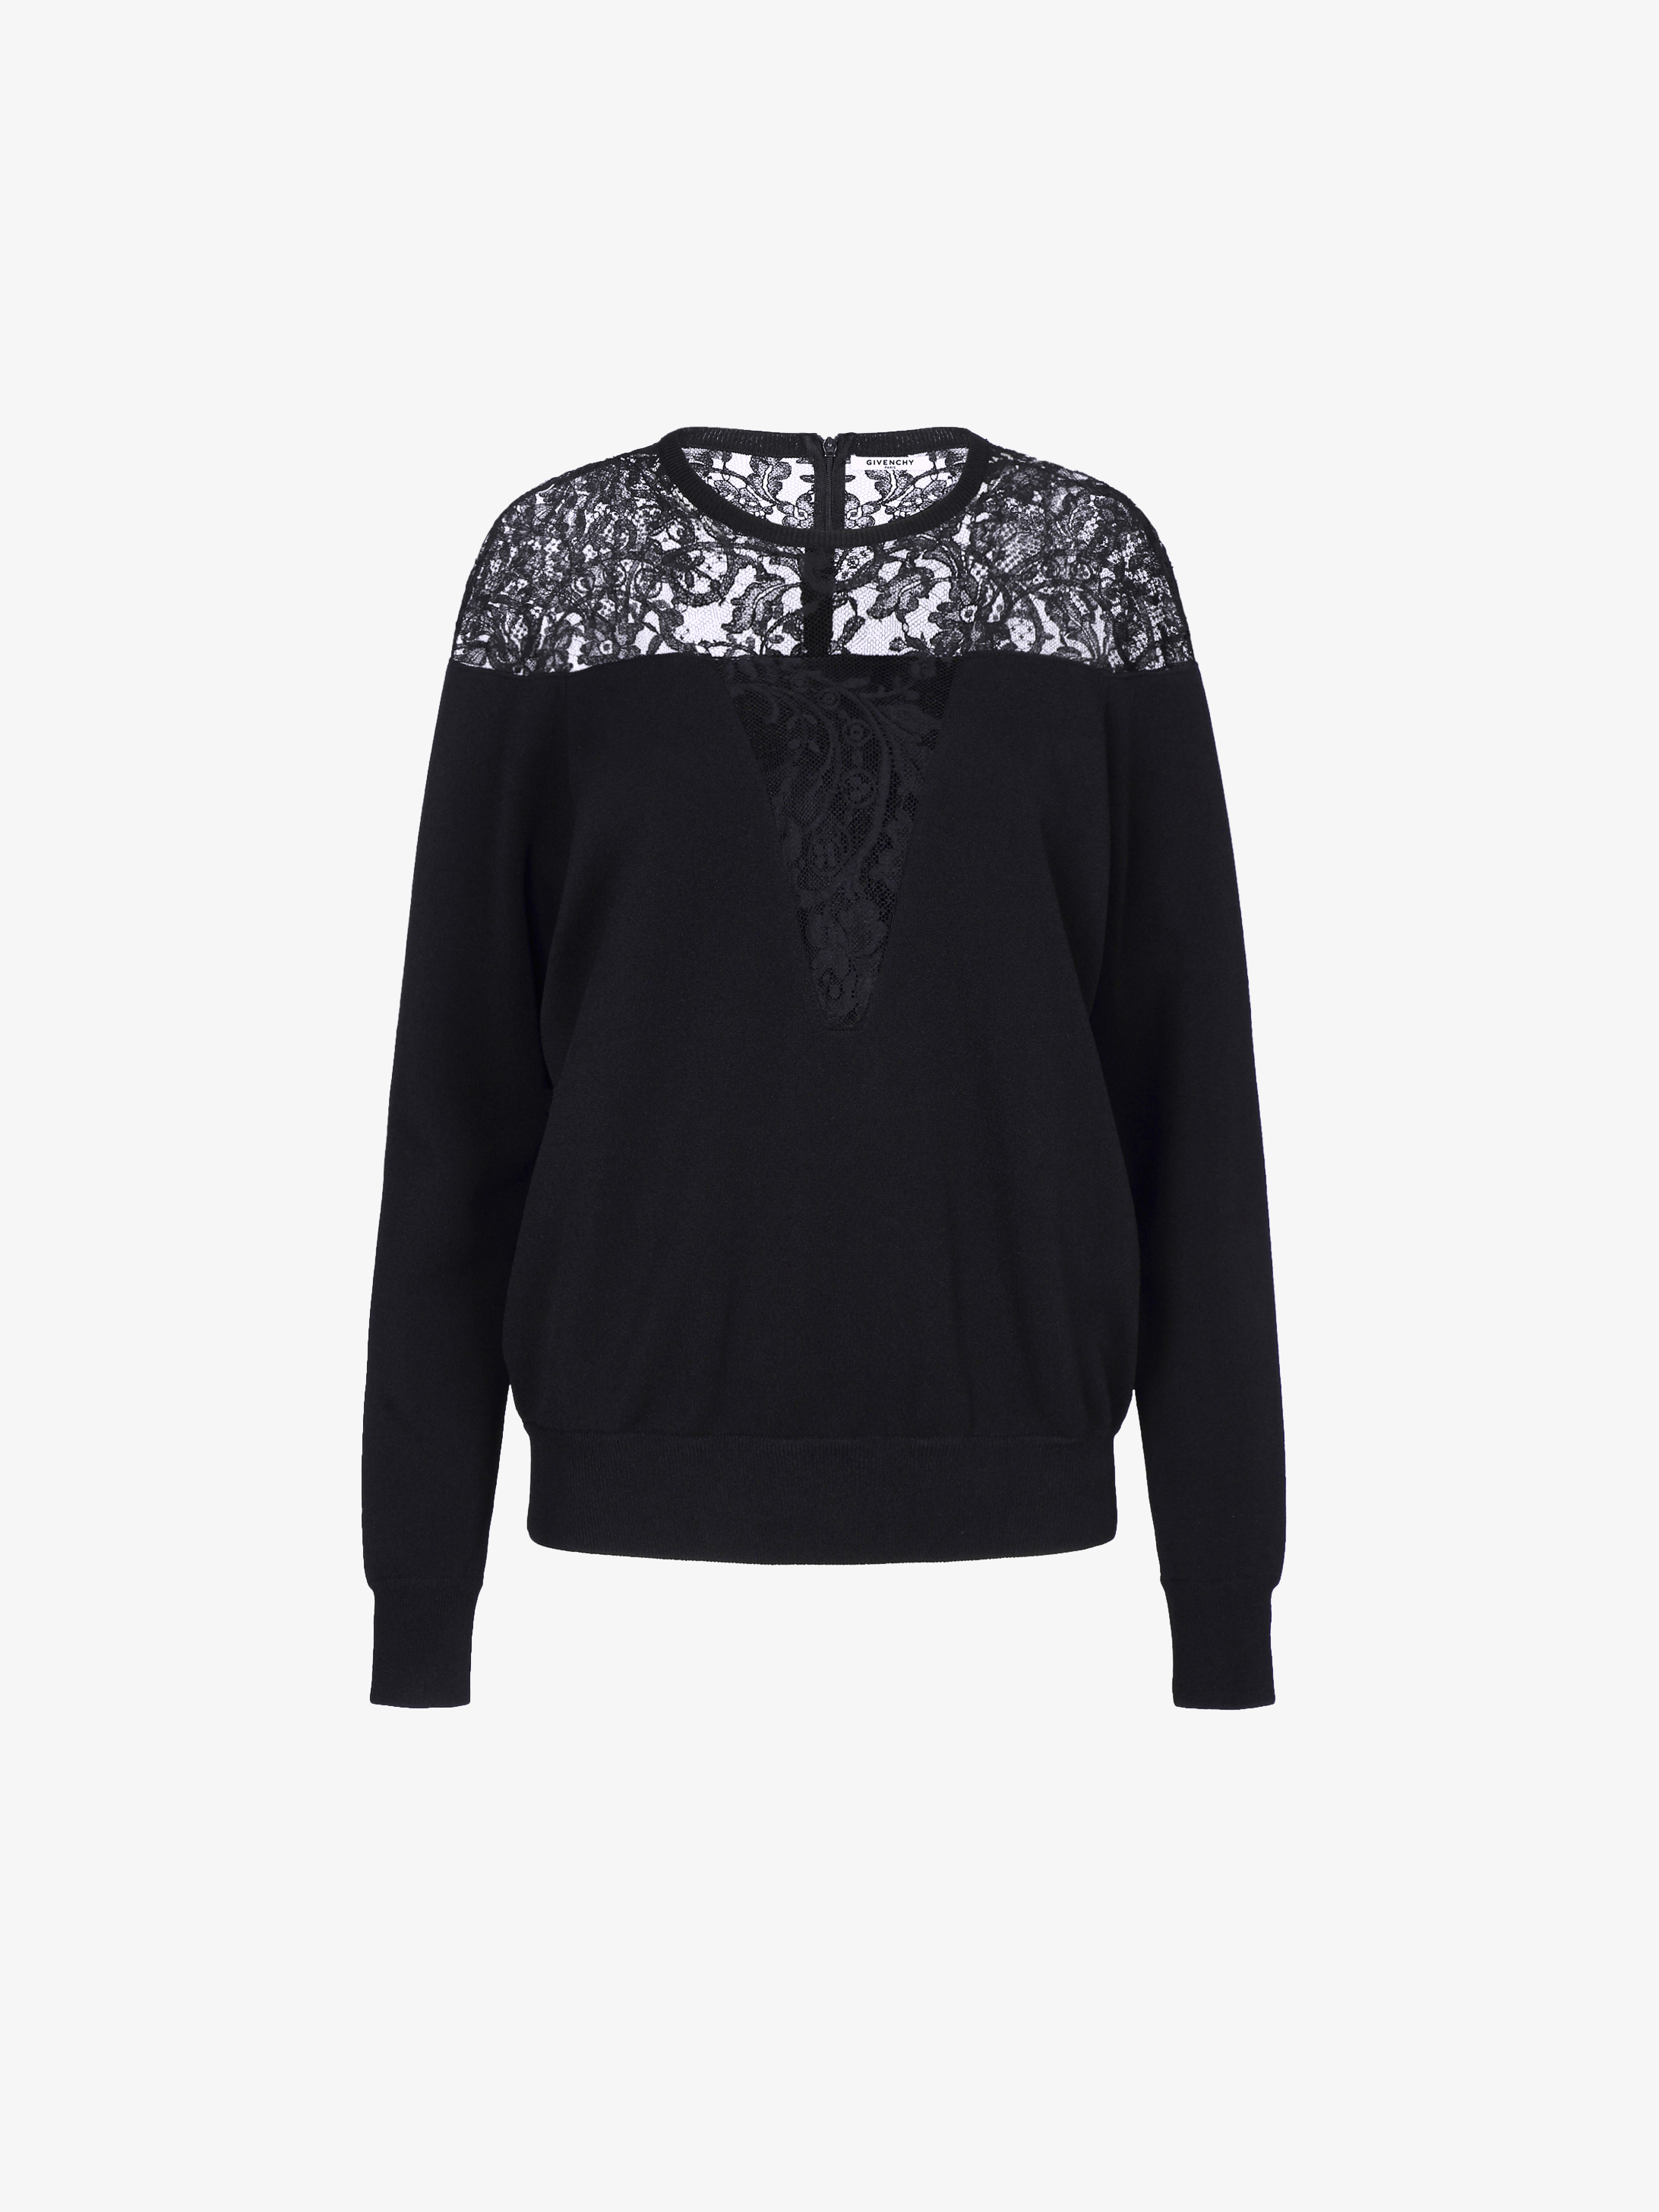 Sweater in viscose and lace